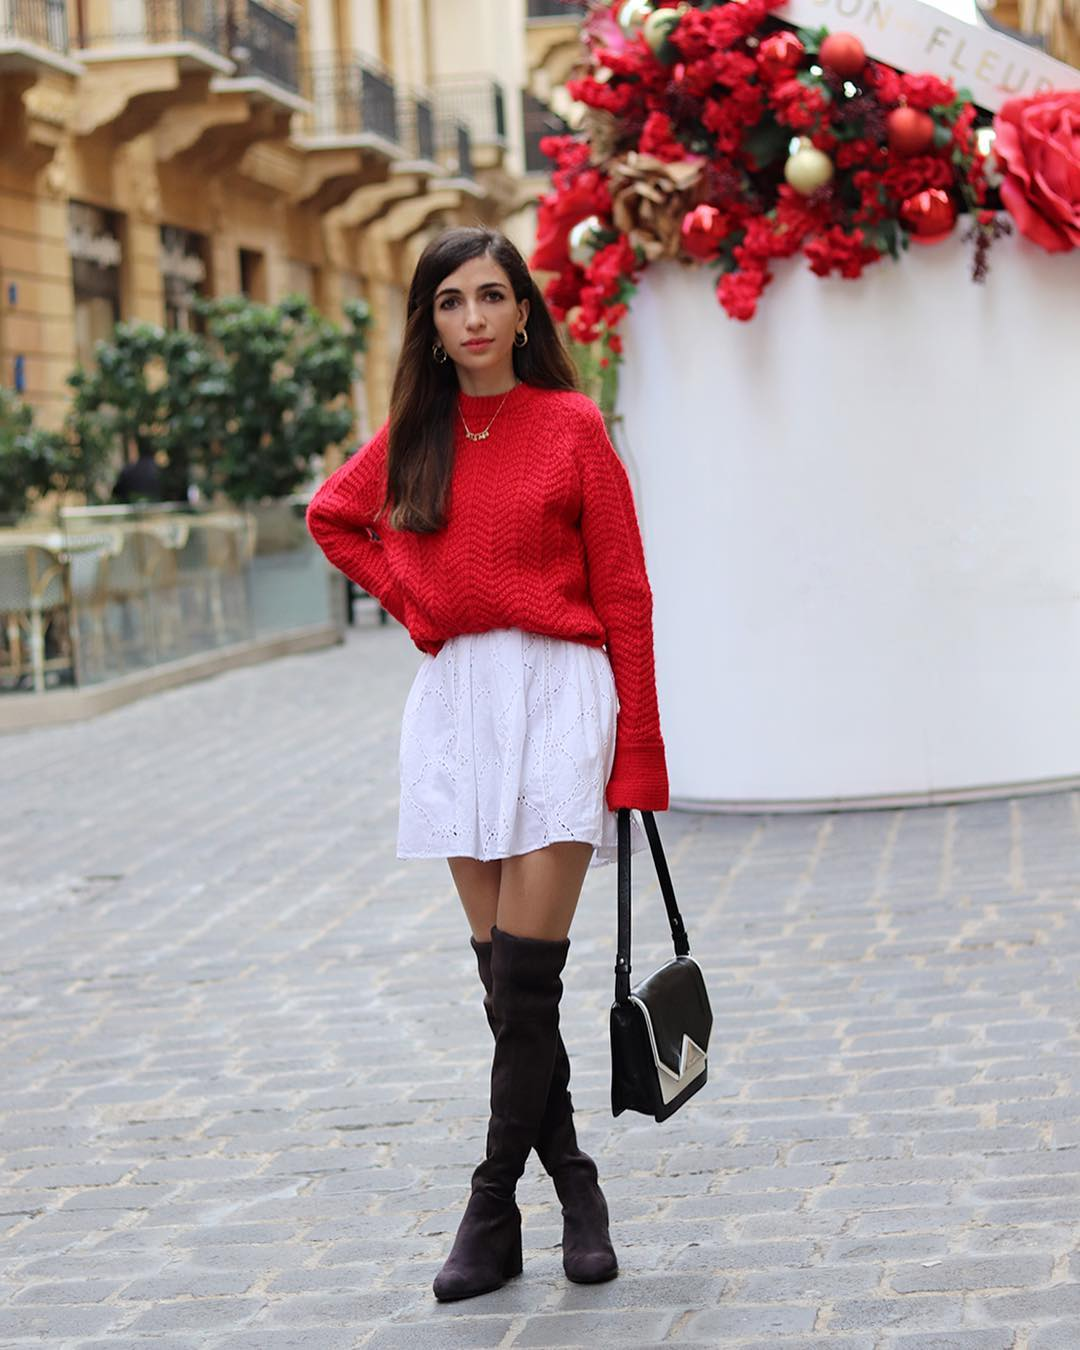 Can I wear a red sweater over a white shirt dress with black OTK boots in 2021?